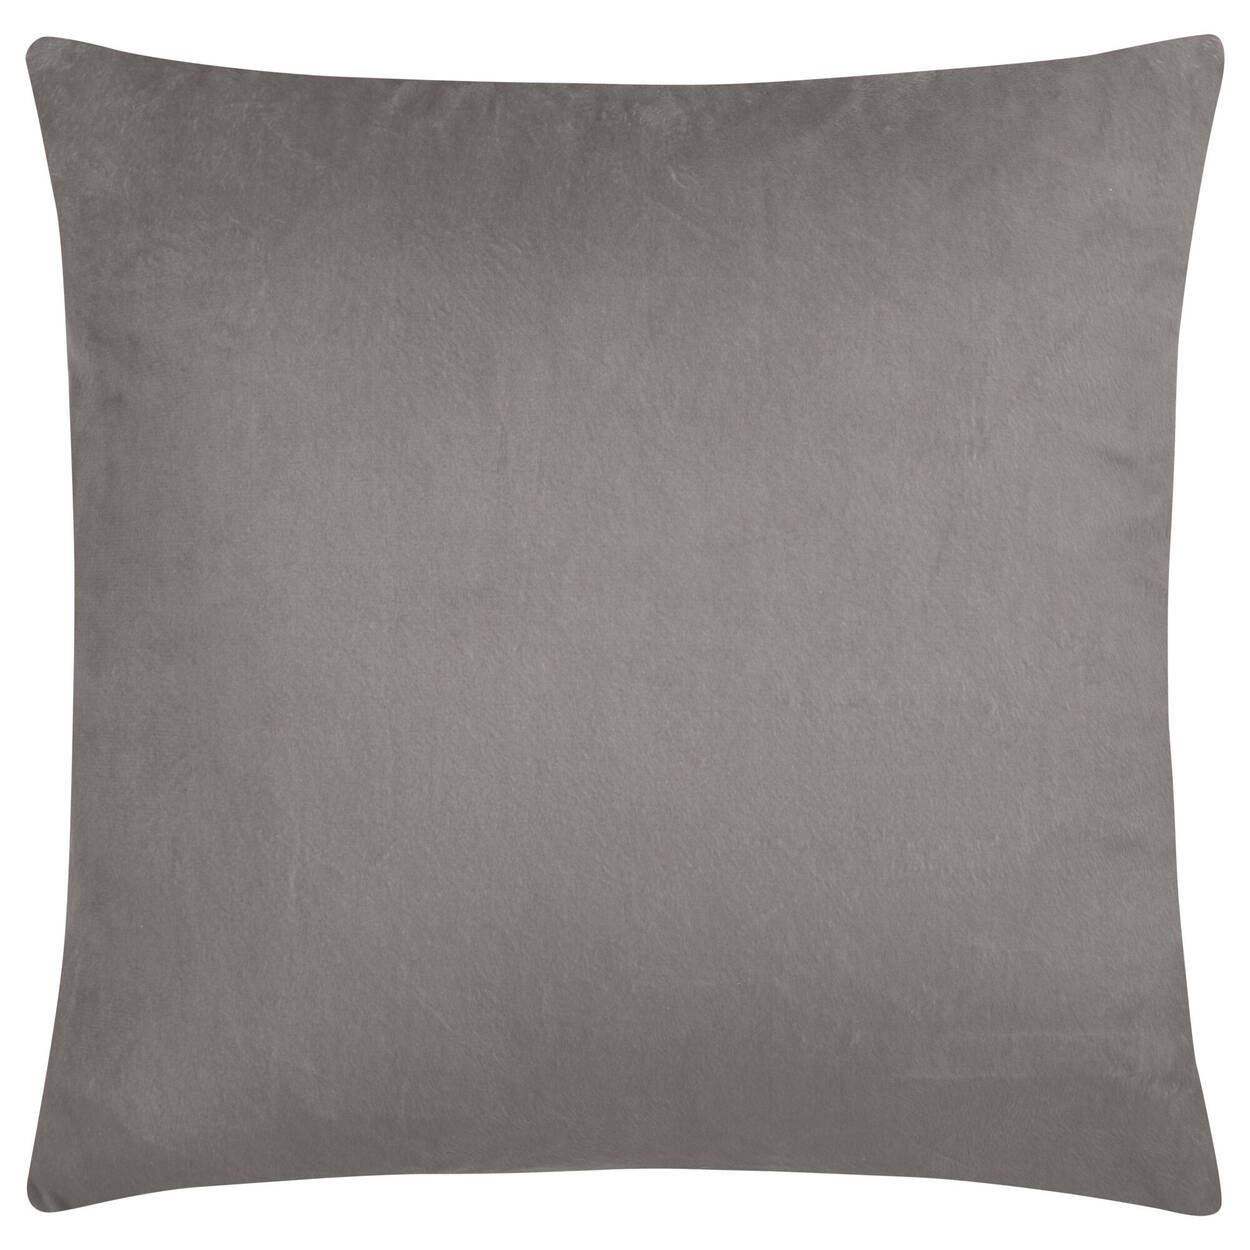 "Magic Decorative Pillow 18"" X 18"""